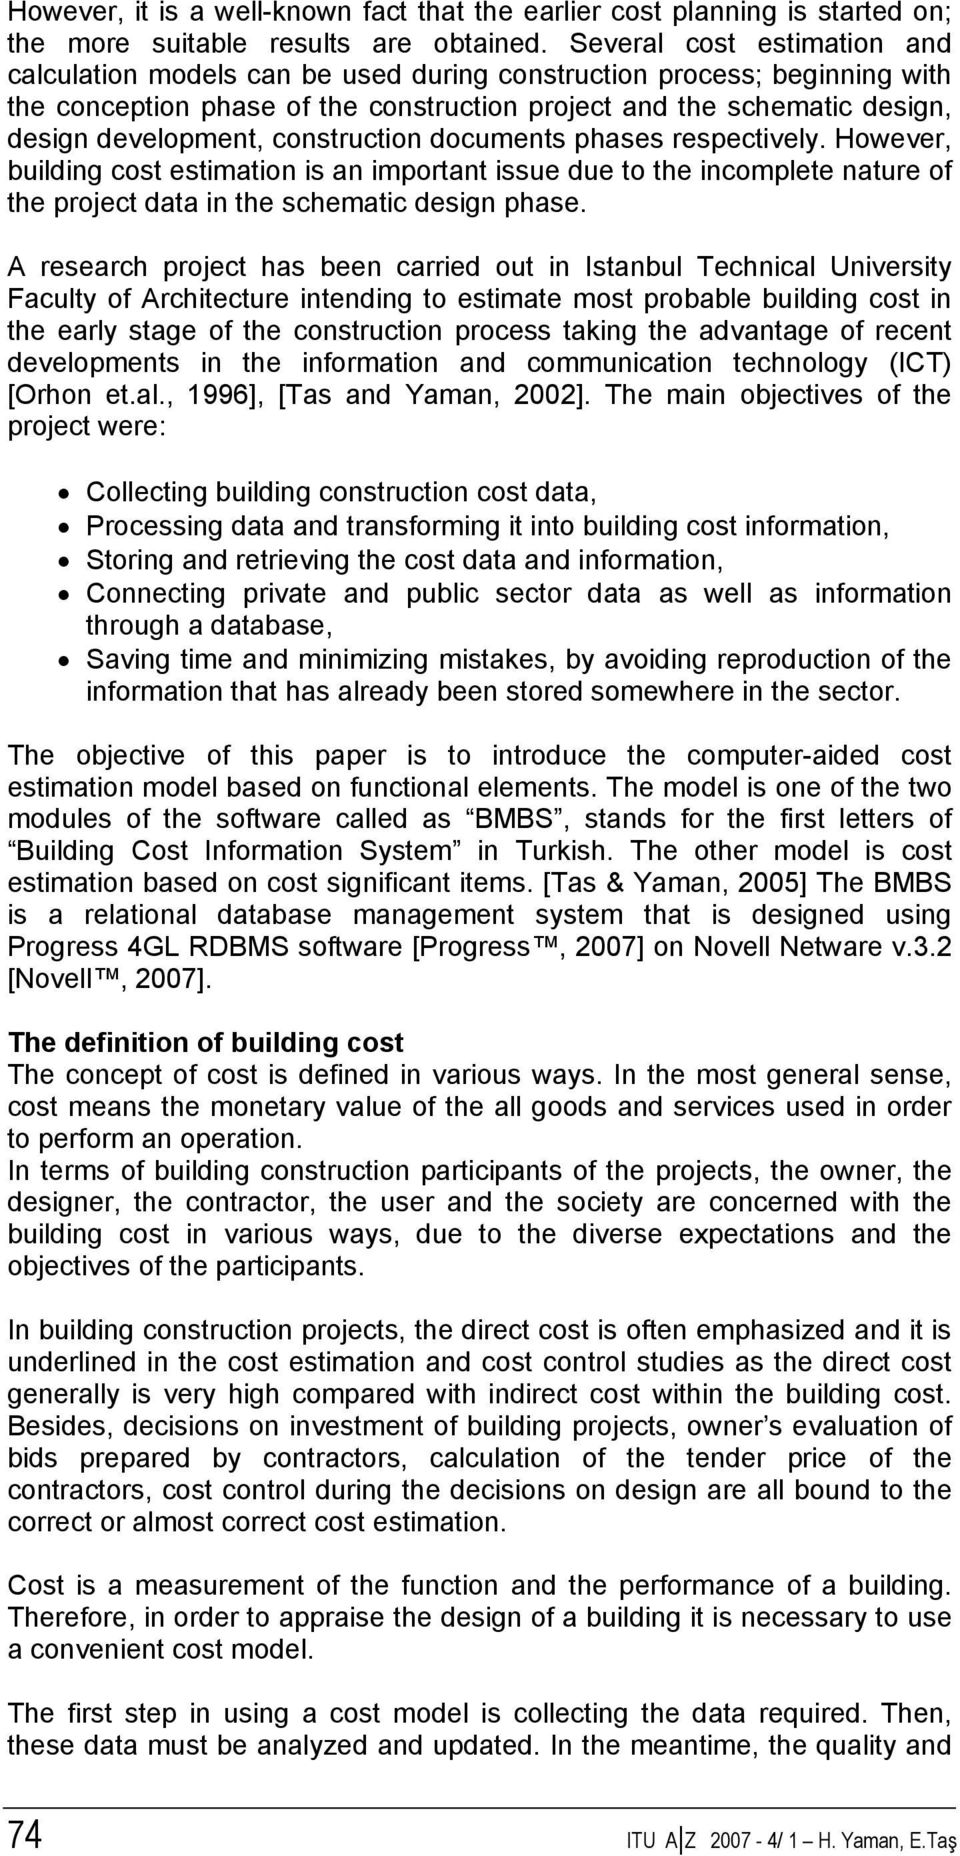 construction documents phases respectively. However, building cost estimation is an important issue due to the incomplete nature of the project data in the schematic design phase.